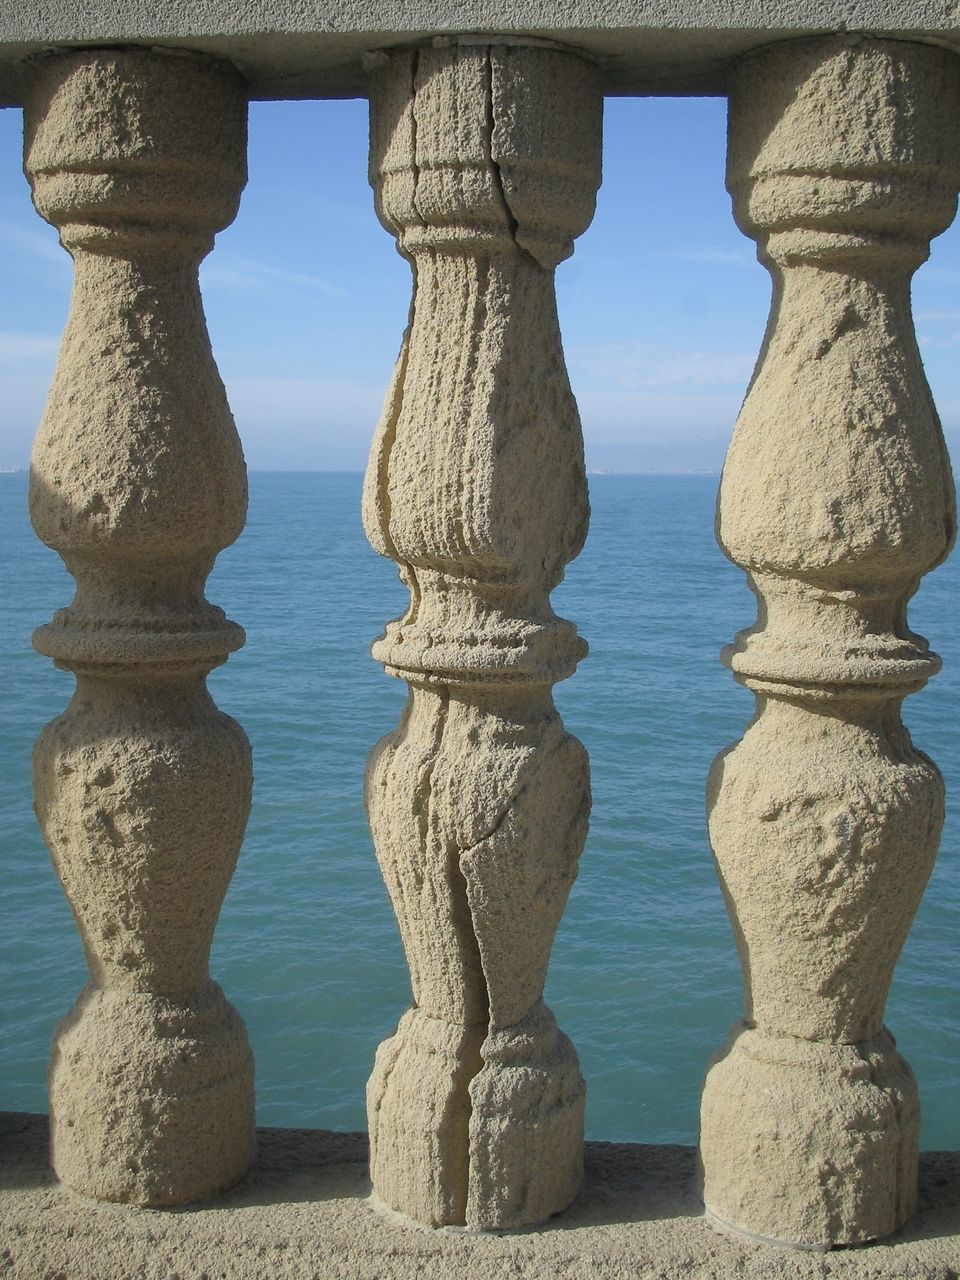 no people, outdoors, travel destinations, day, architectural column, water, sea, built structure, nature, sky, beach, close-up, ancient civilization, architecture